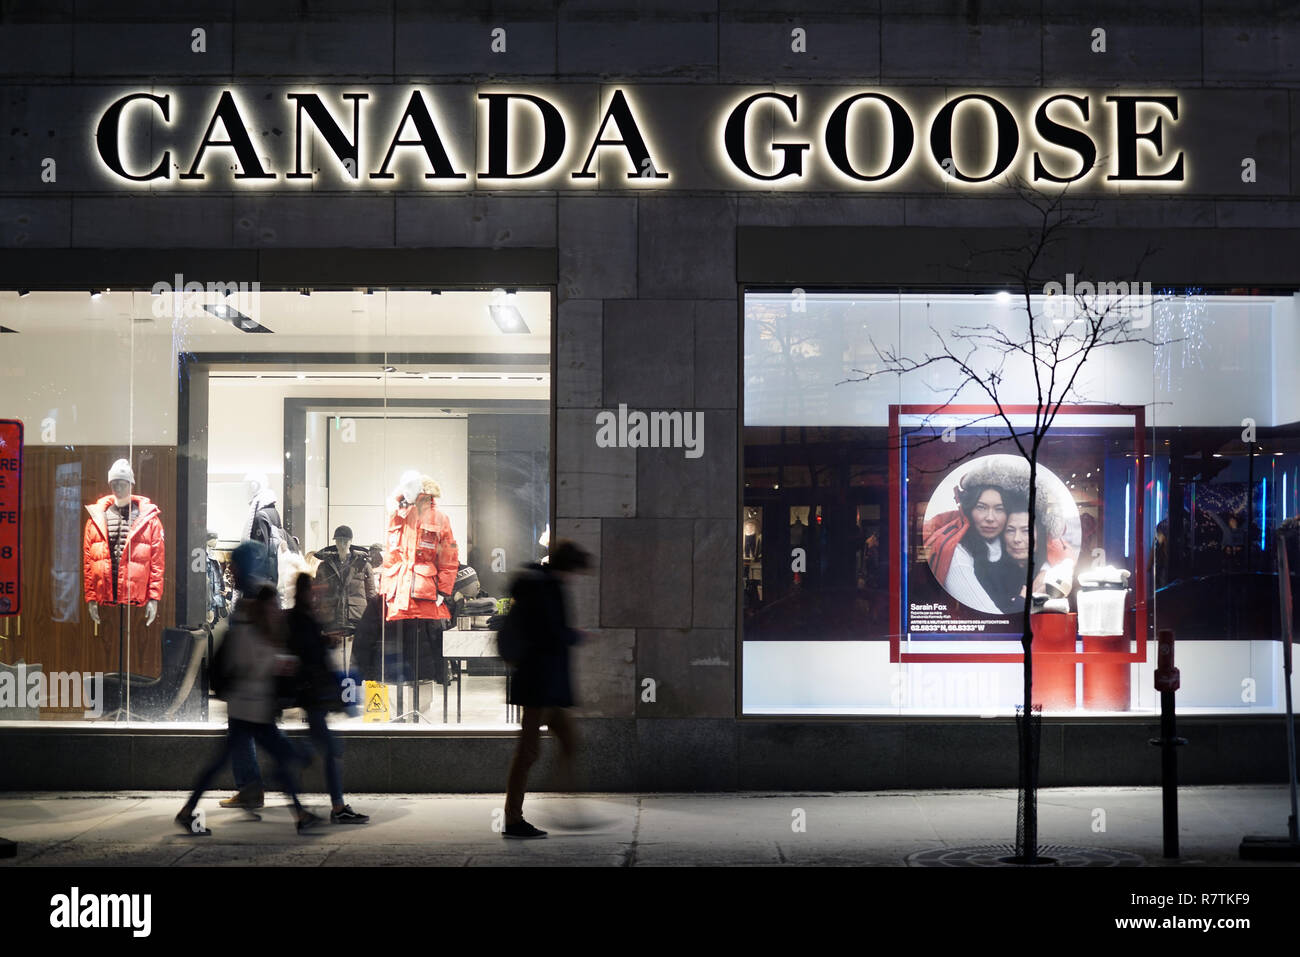 canada goose stores montreal